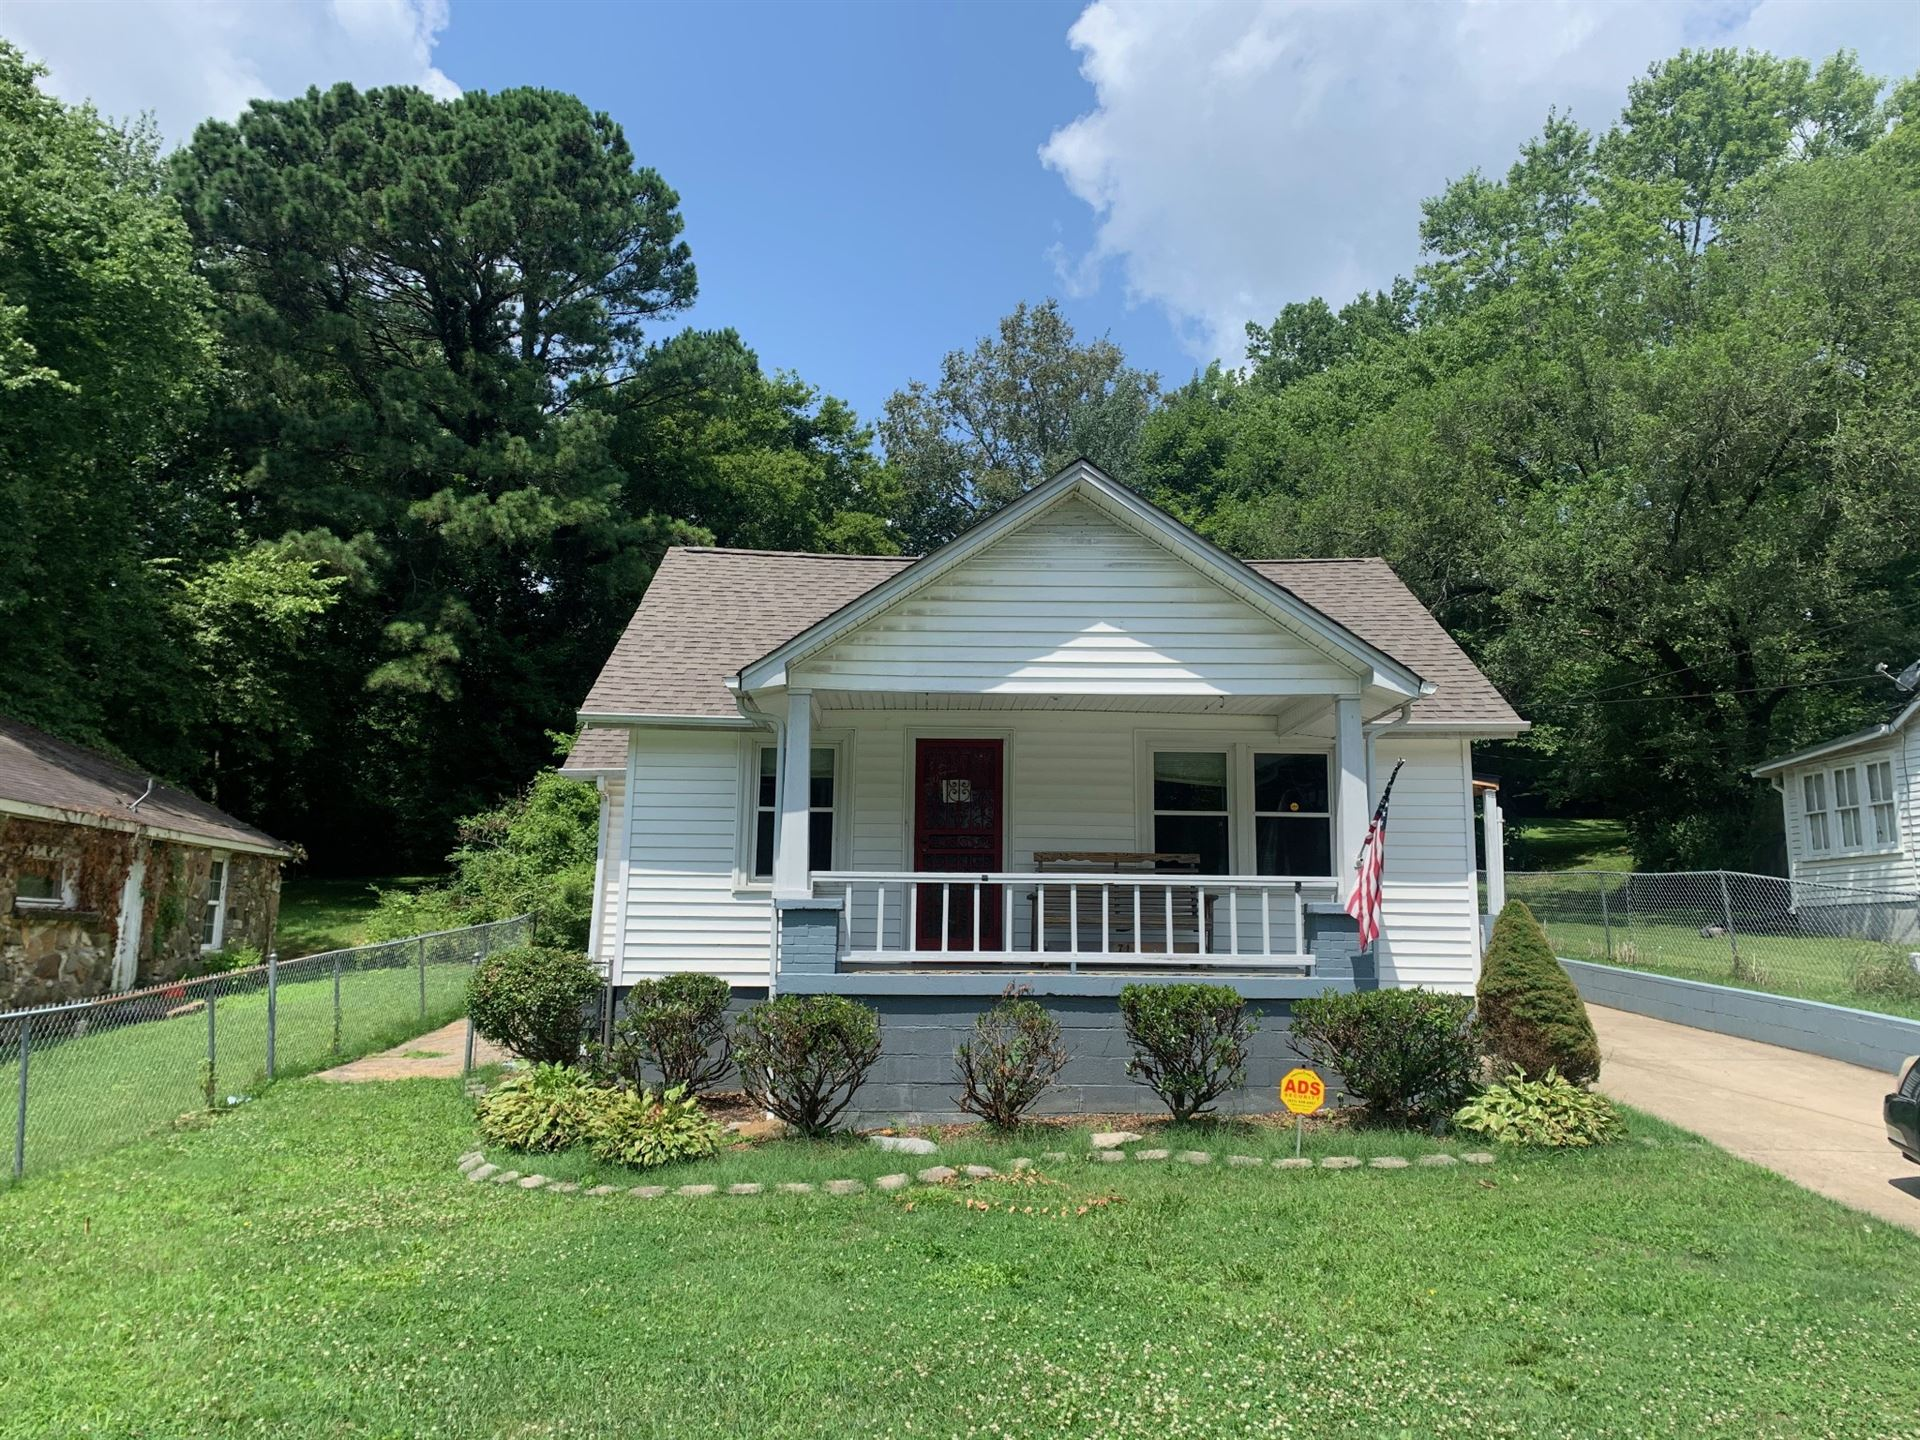 712 Central Ave, Clarksville, TN 37040 - MLS#: 2273025